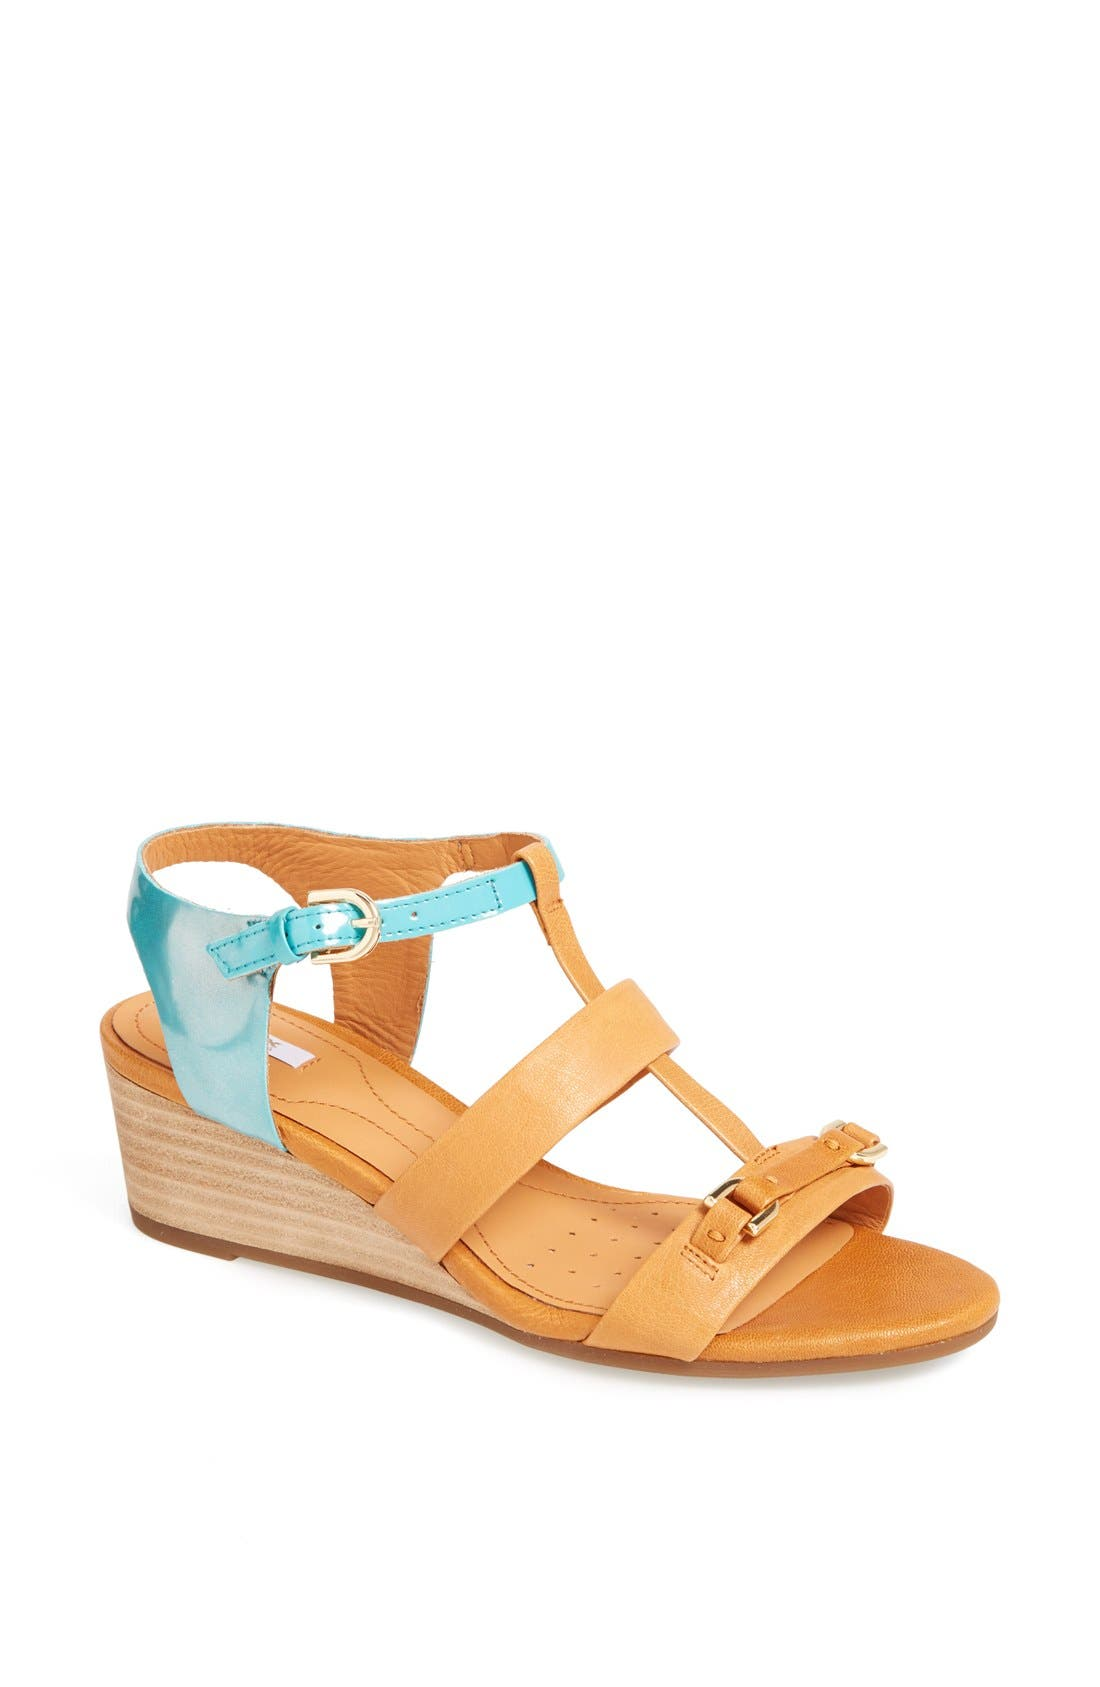 GEOX 'Lupe' Leather Sandal, Main, color, 258